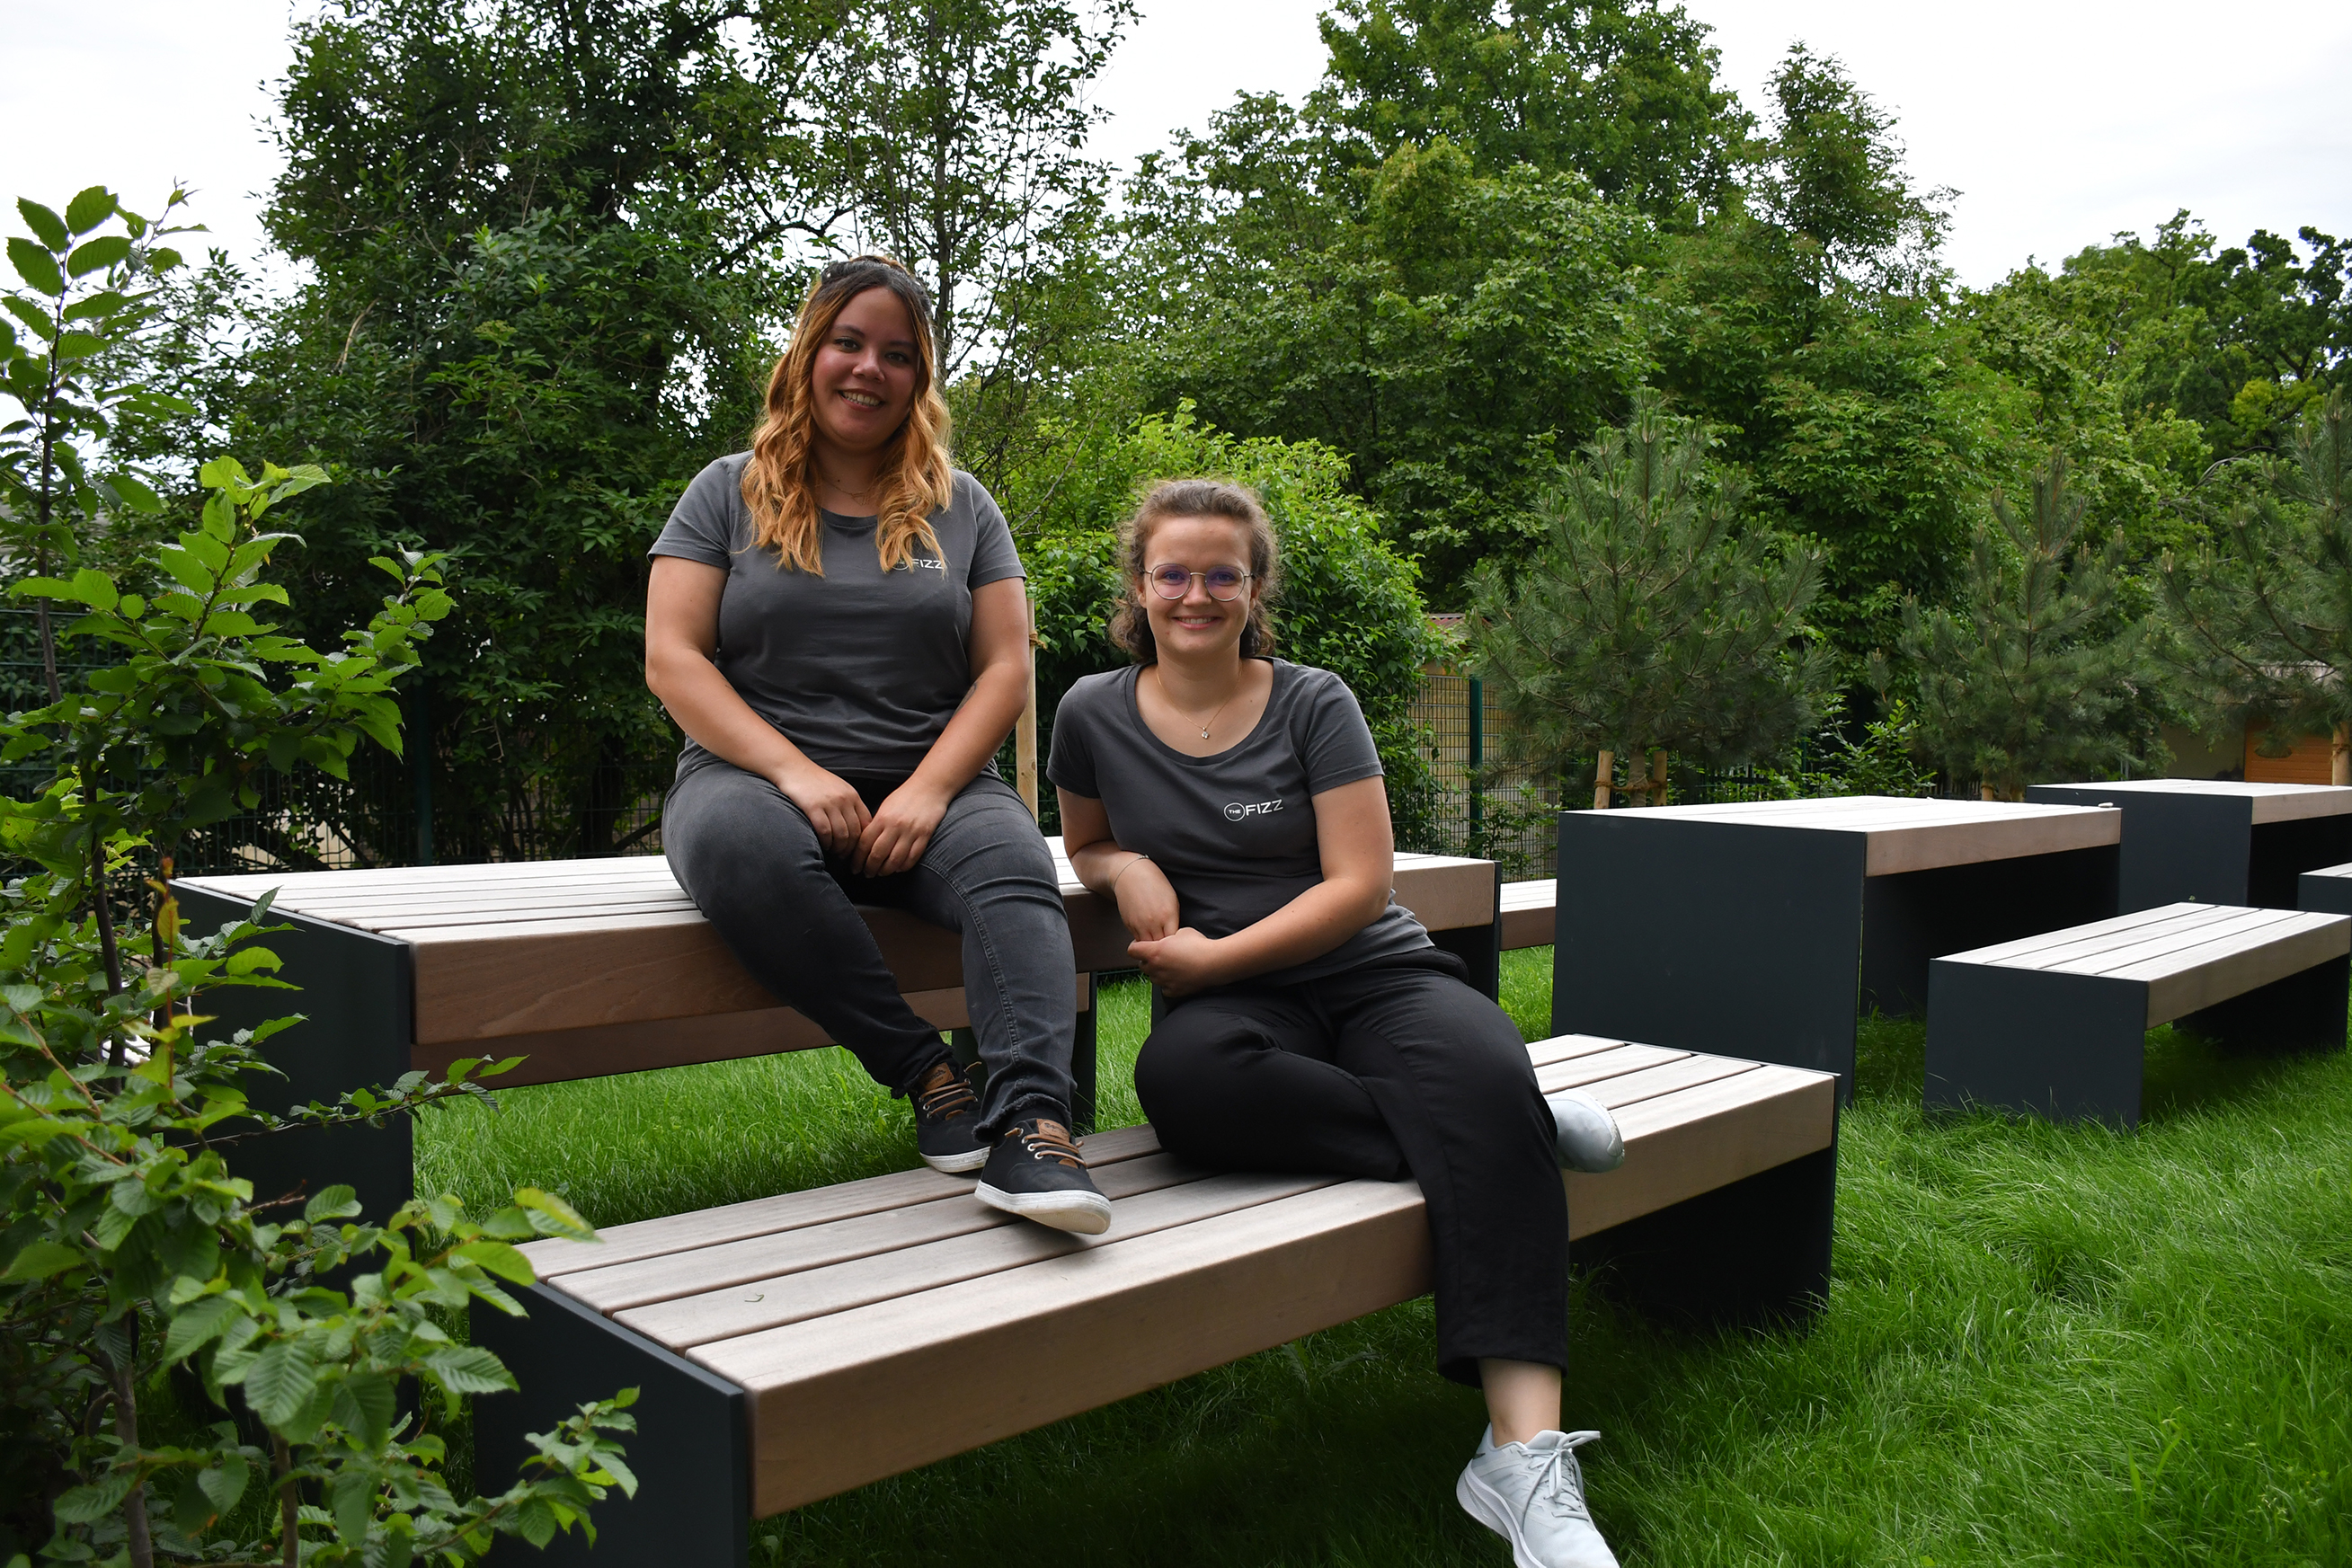 Two girls are sitting casually on a bench outside, surrounded by trees and green. They wear dark grey t-shirts, pants and sneakers. They look directly into the camera, smiling.